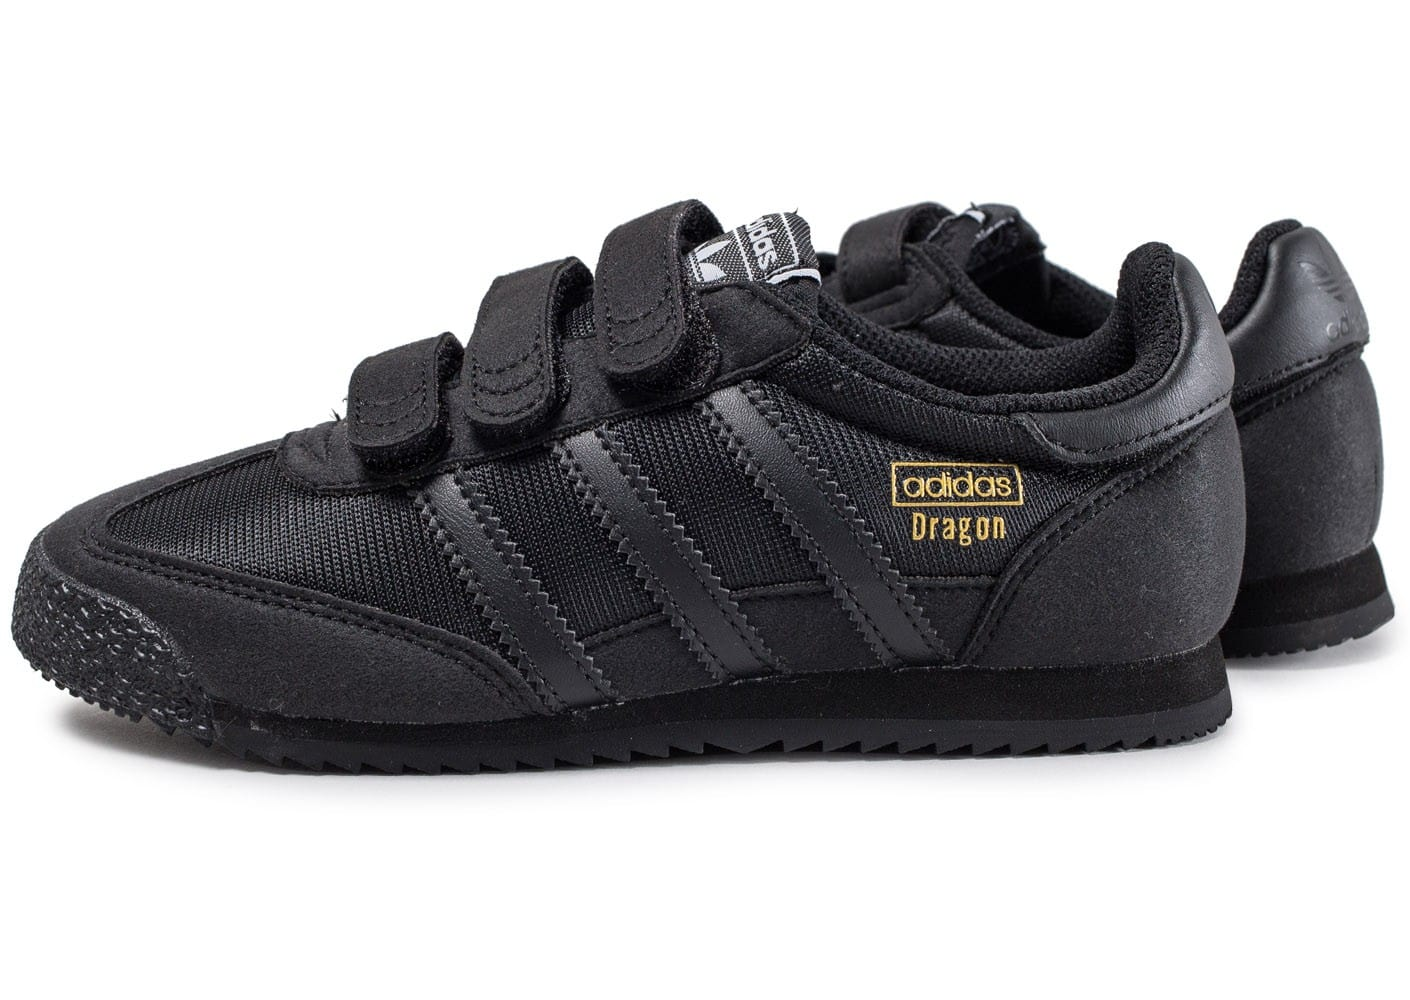 7a0229c6874b5 chaussures adidas femme montantes